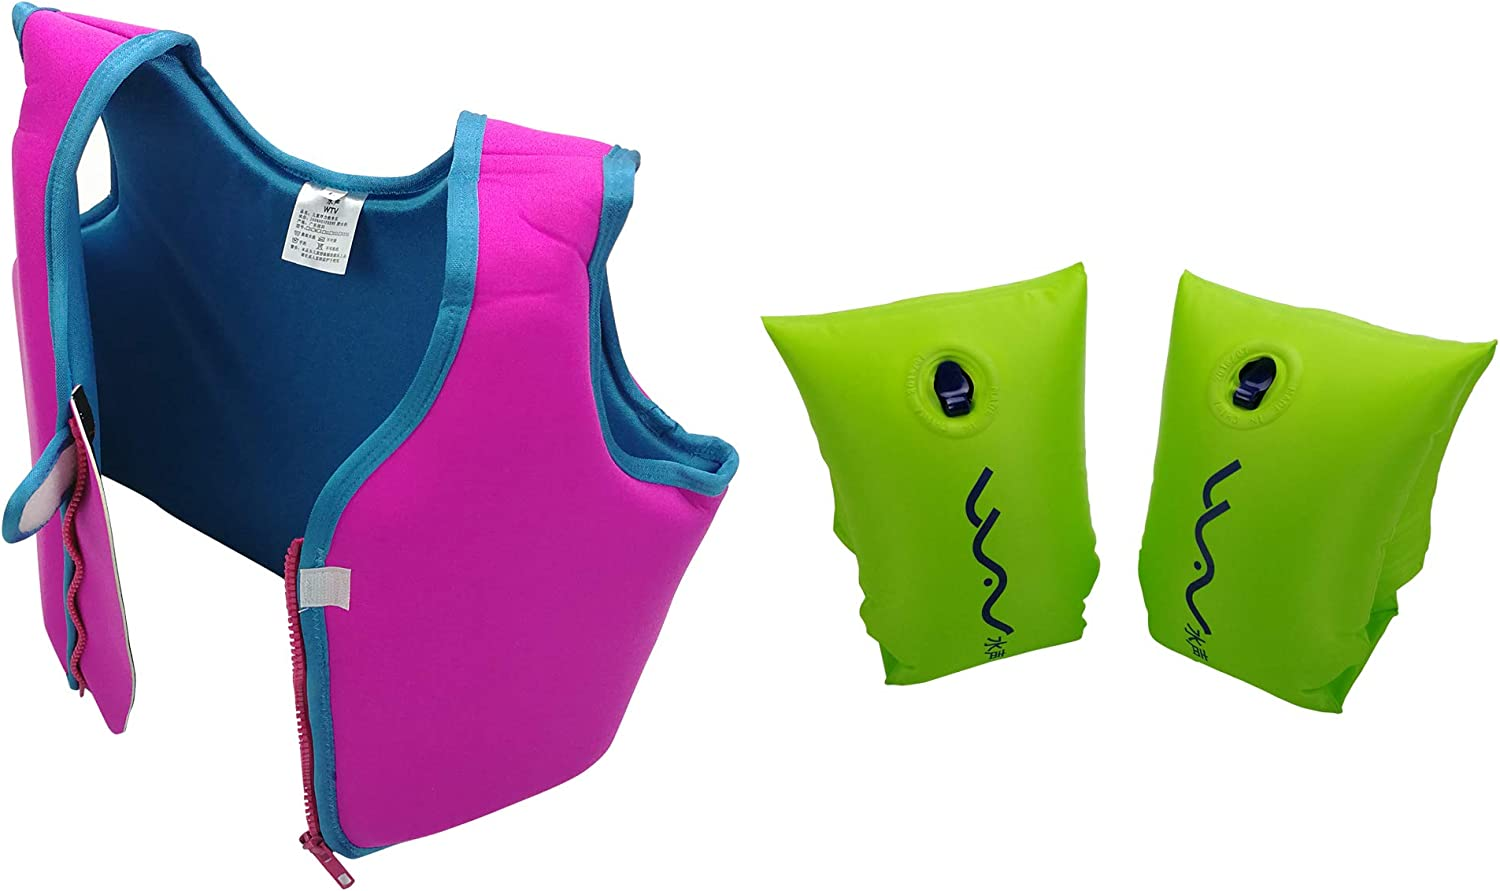 NEW MOON 007 Swim Arm Bands Floater with Holiday Swim Vest Float